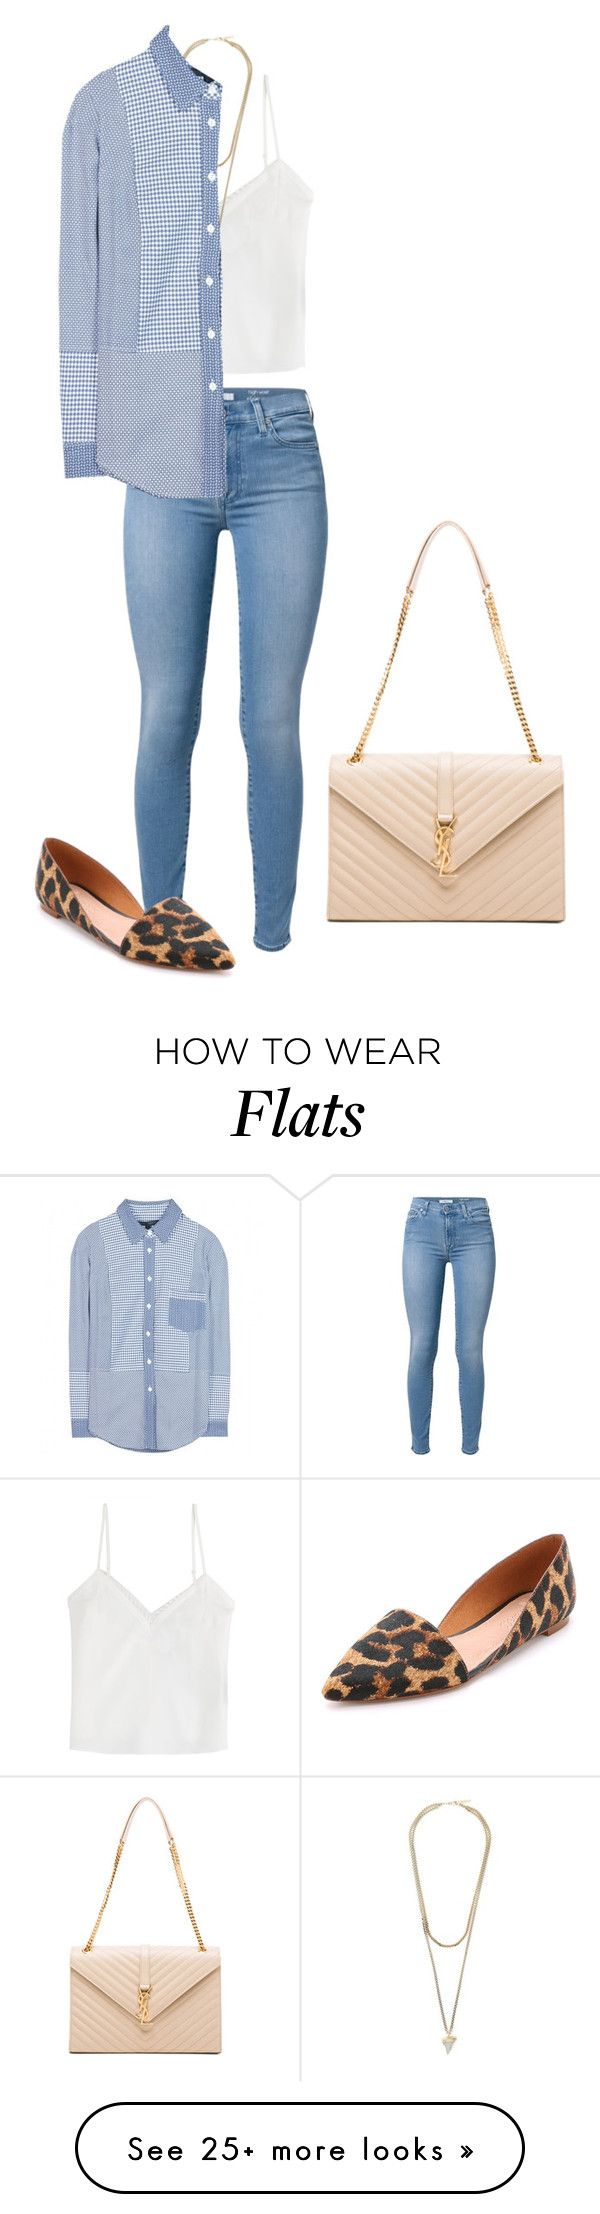 """""""480"""" by m-e-rod on Polyvore featuring The Kooples, 7 For All Mankind, Givenchy, dVb Victoria Beckham, Madewell and Yves Saint Laurent"""